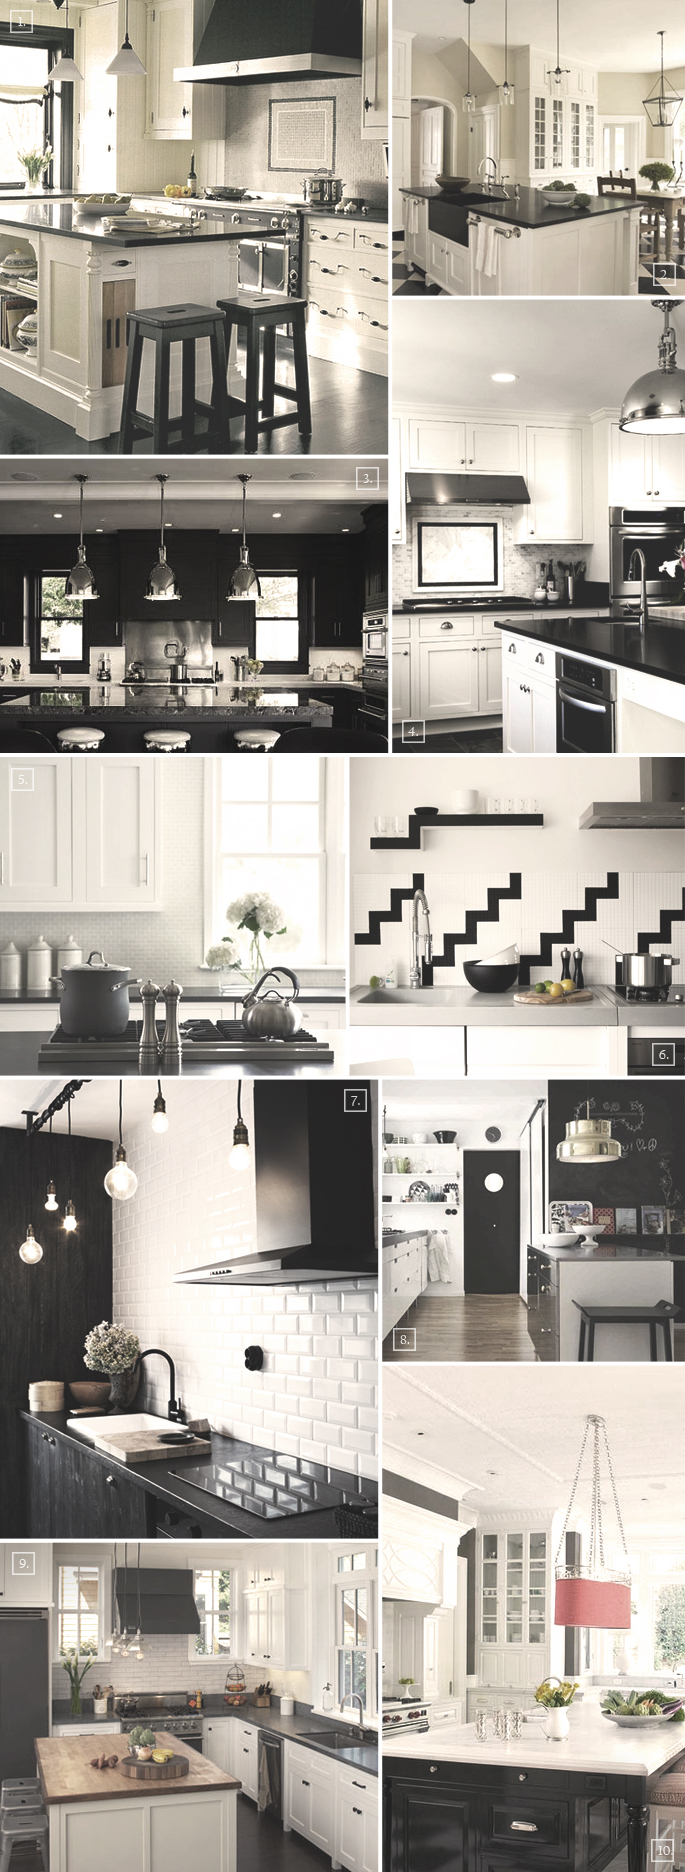 Black and white kitchen ideas and designs mood board for Black and white kitchens photos